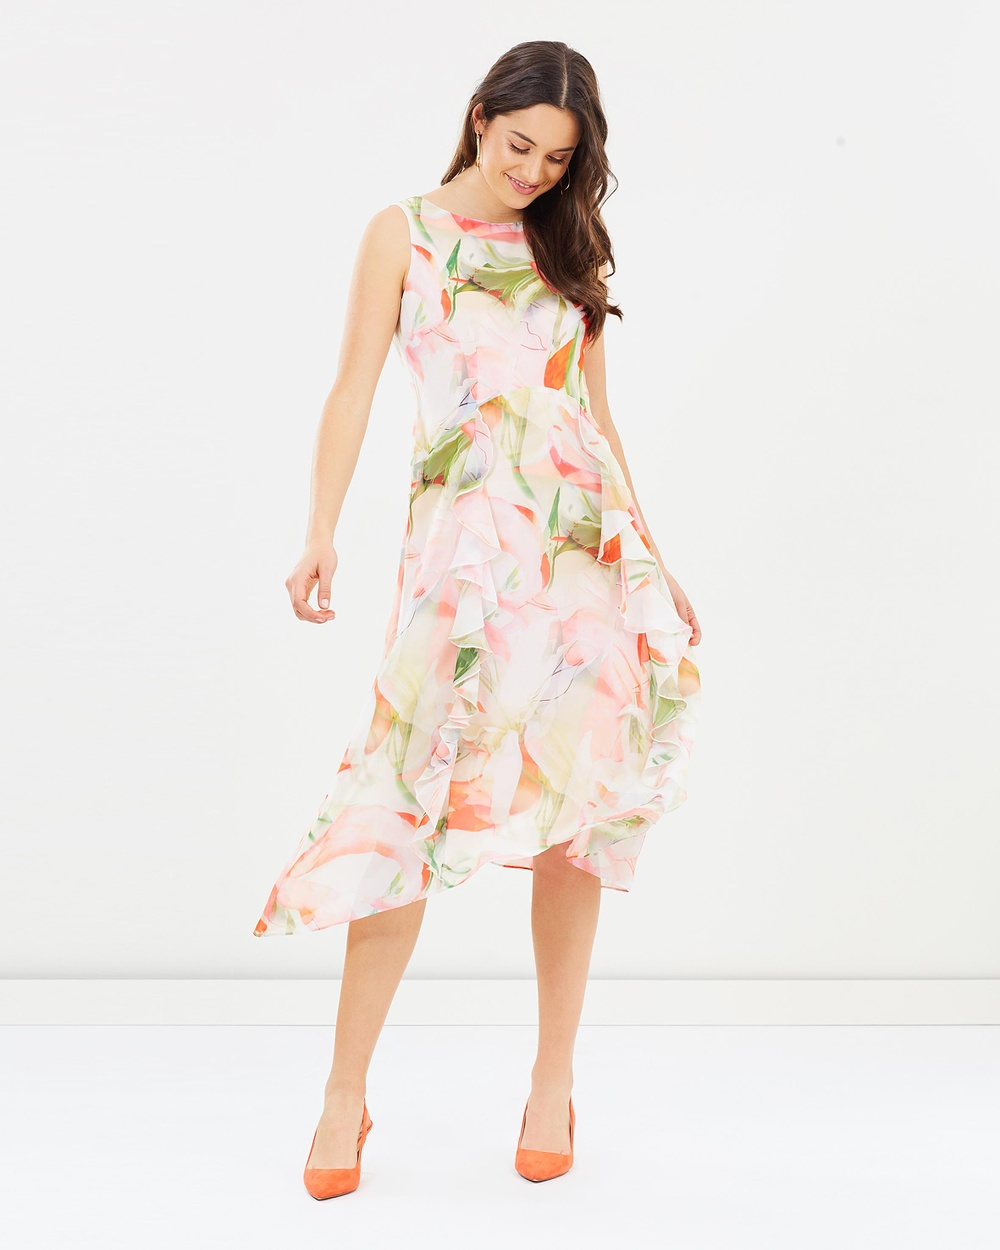 Wallis Spring Floral Ruffle Dress Printed Dresses Pink Spring Floral Ruffle Dress